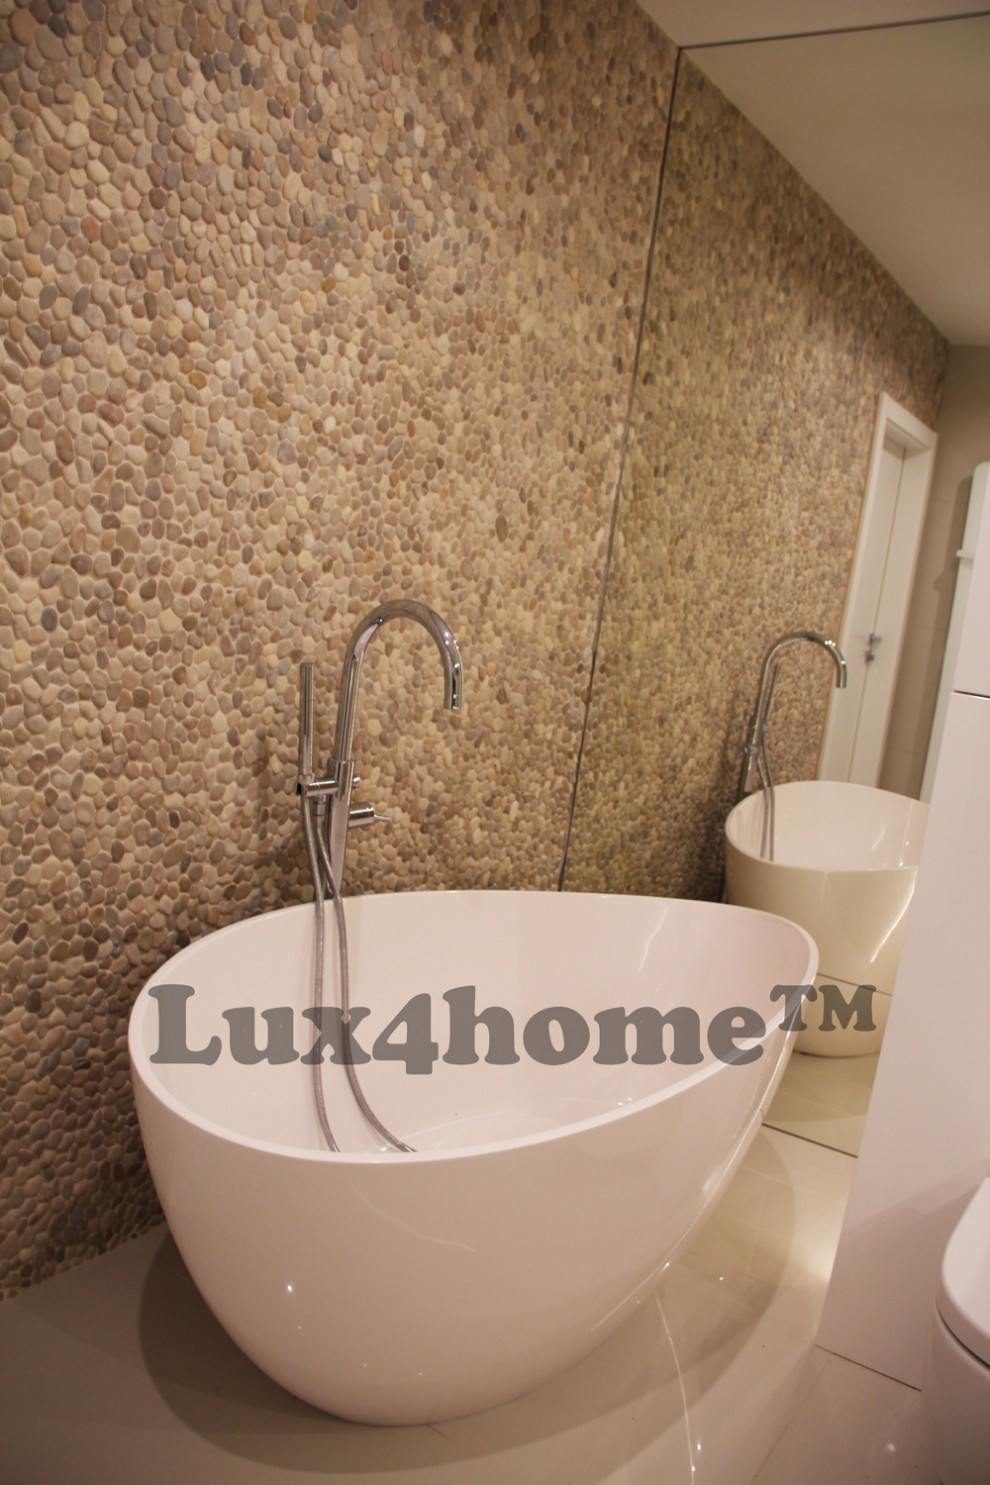 Pebble tiles Maluku Tan-Lux4home(6)